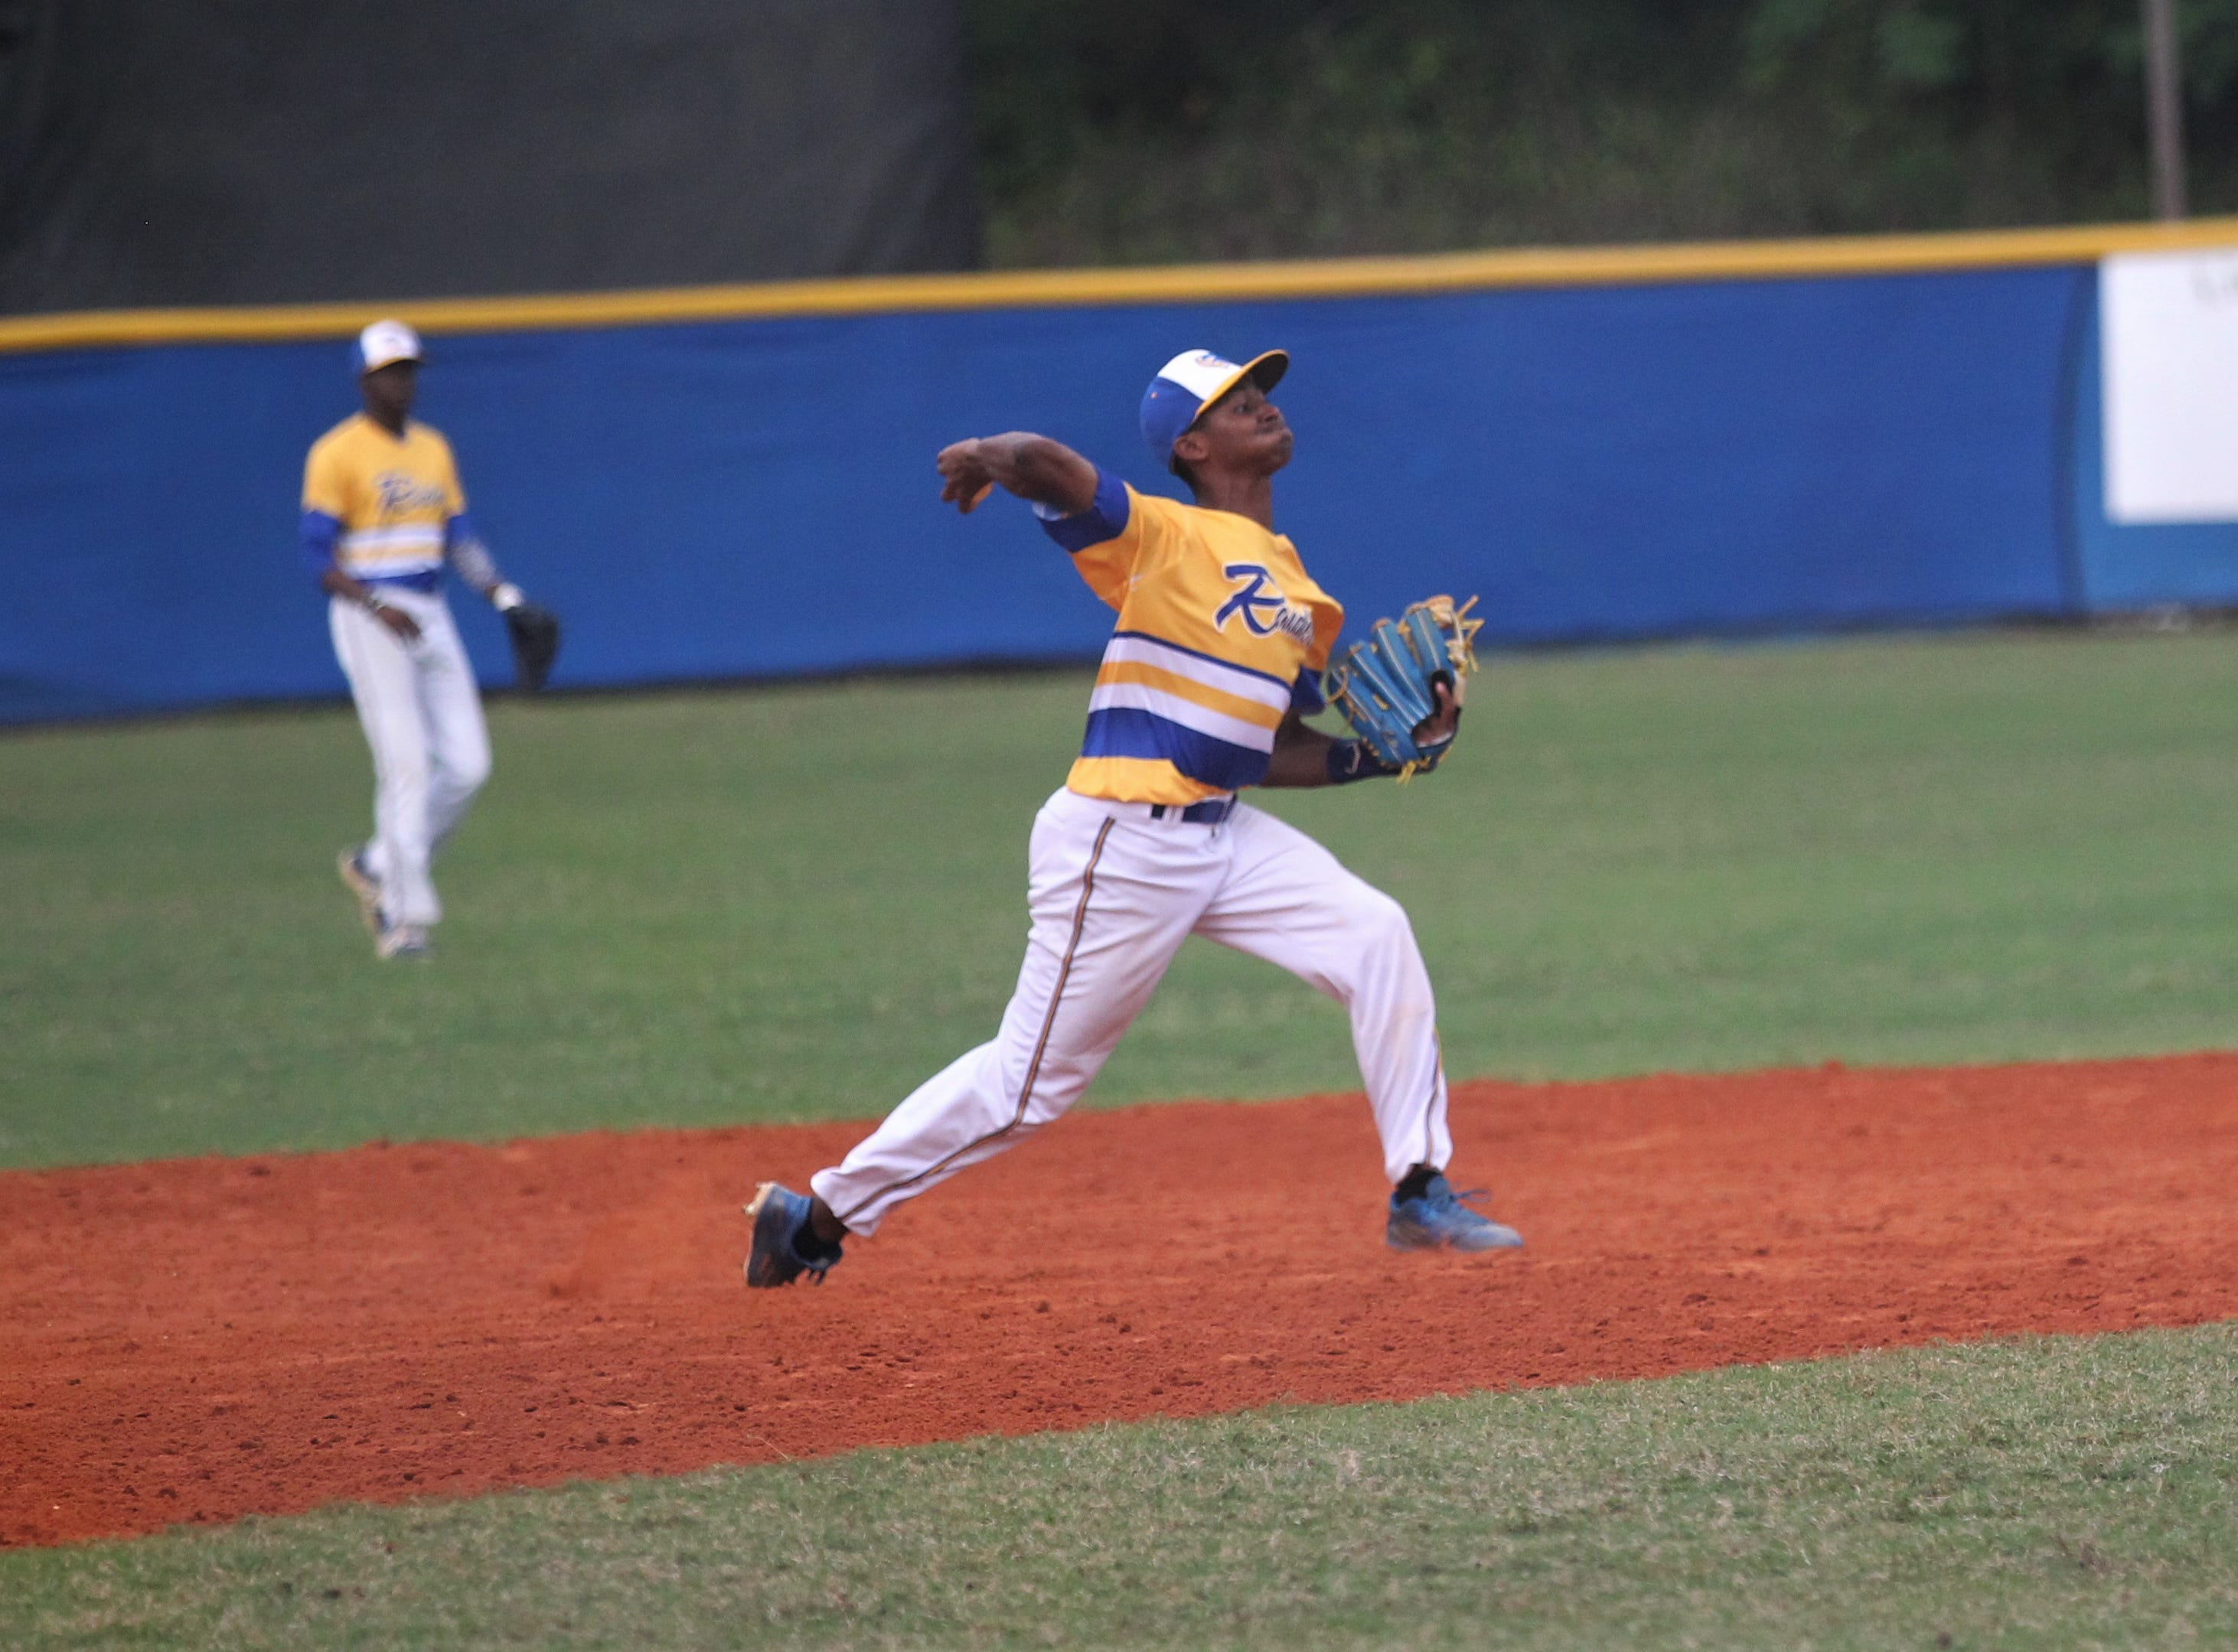 Rickards sophomore shortstop Lawrence Steed throws to first for an out as Rickards beat Gadsden County 18-0 in three innings on Friday, April 12, 2019.